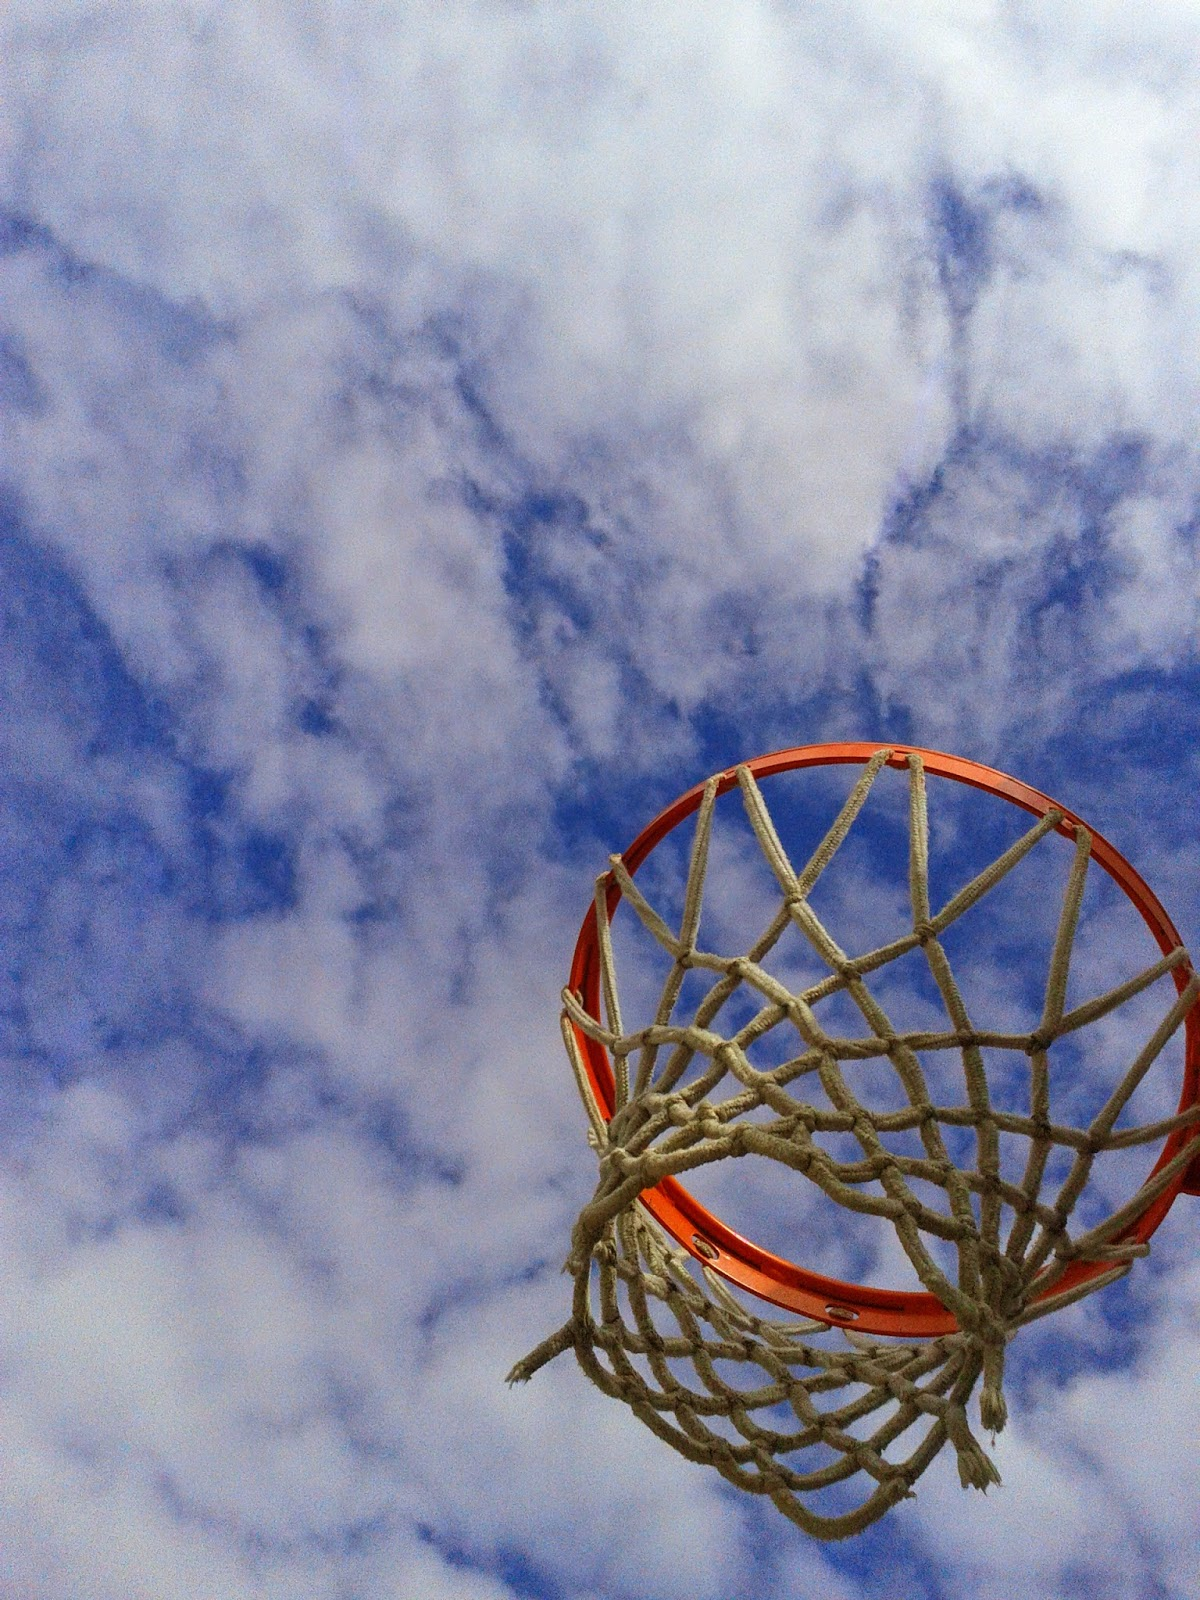 Basketball net rim amongst the blue sky and clouds